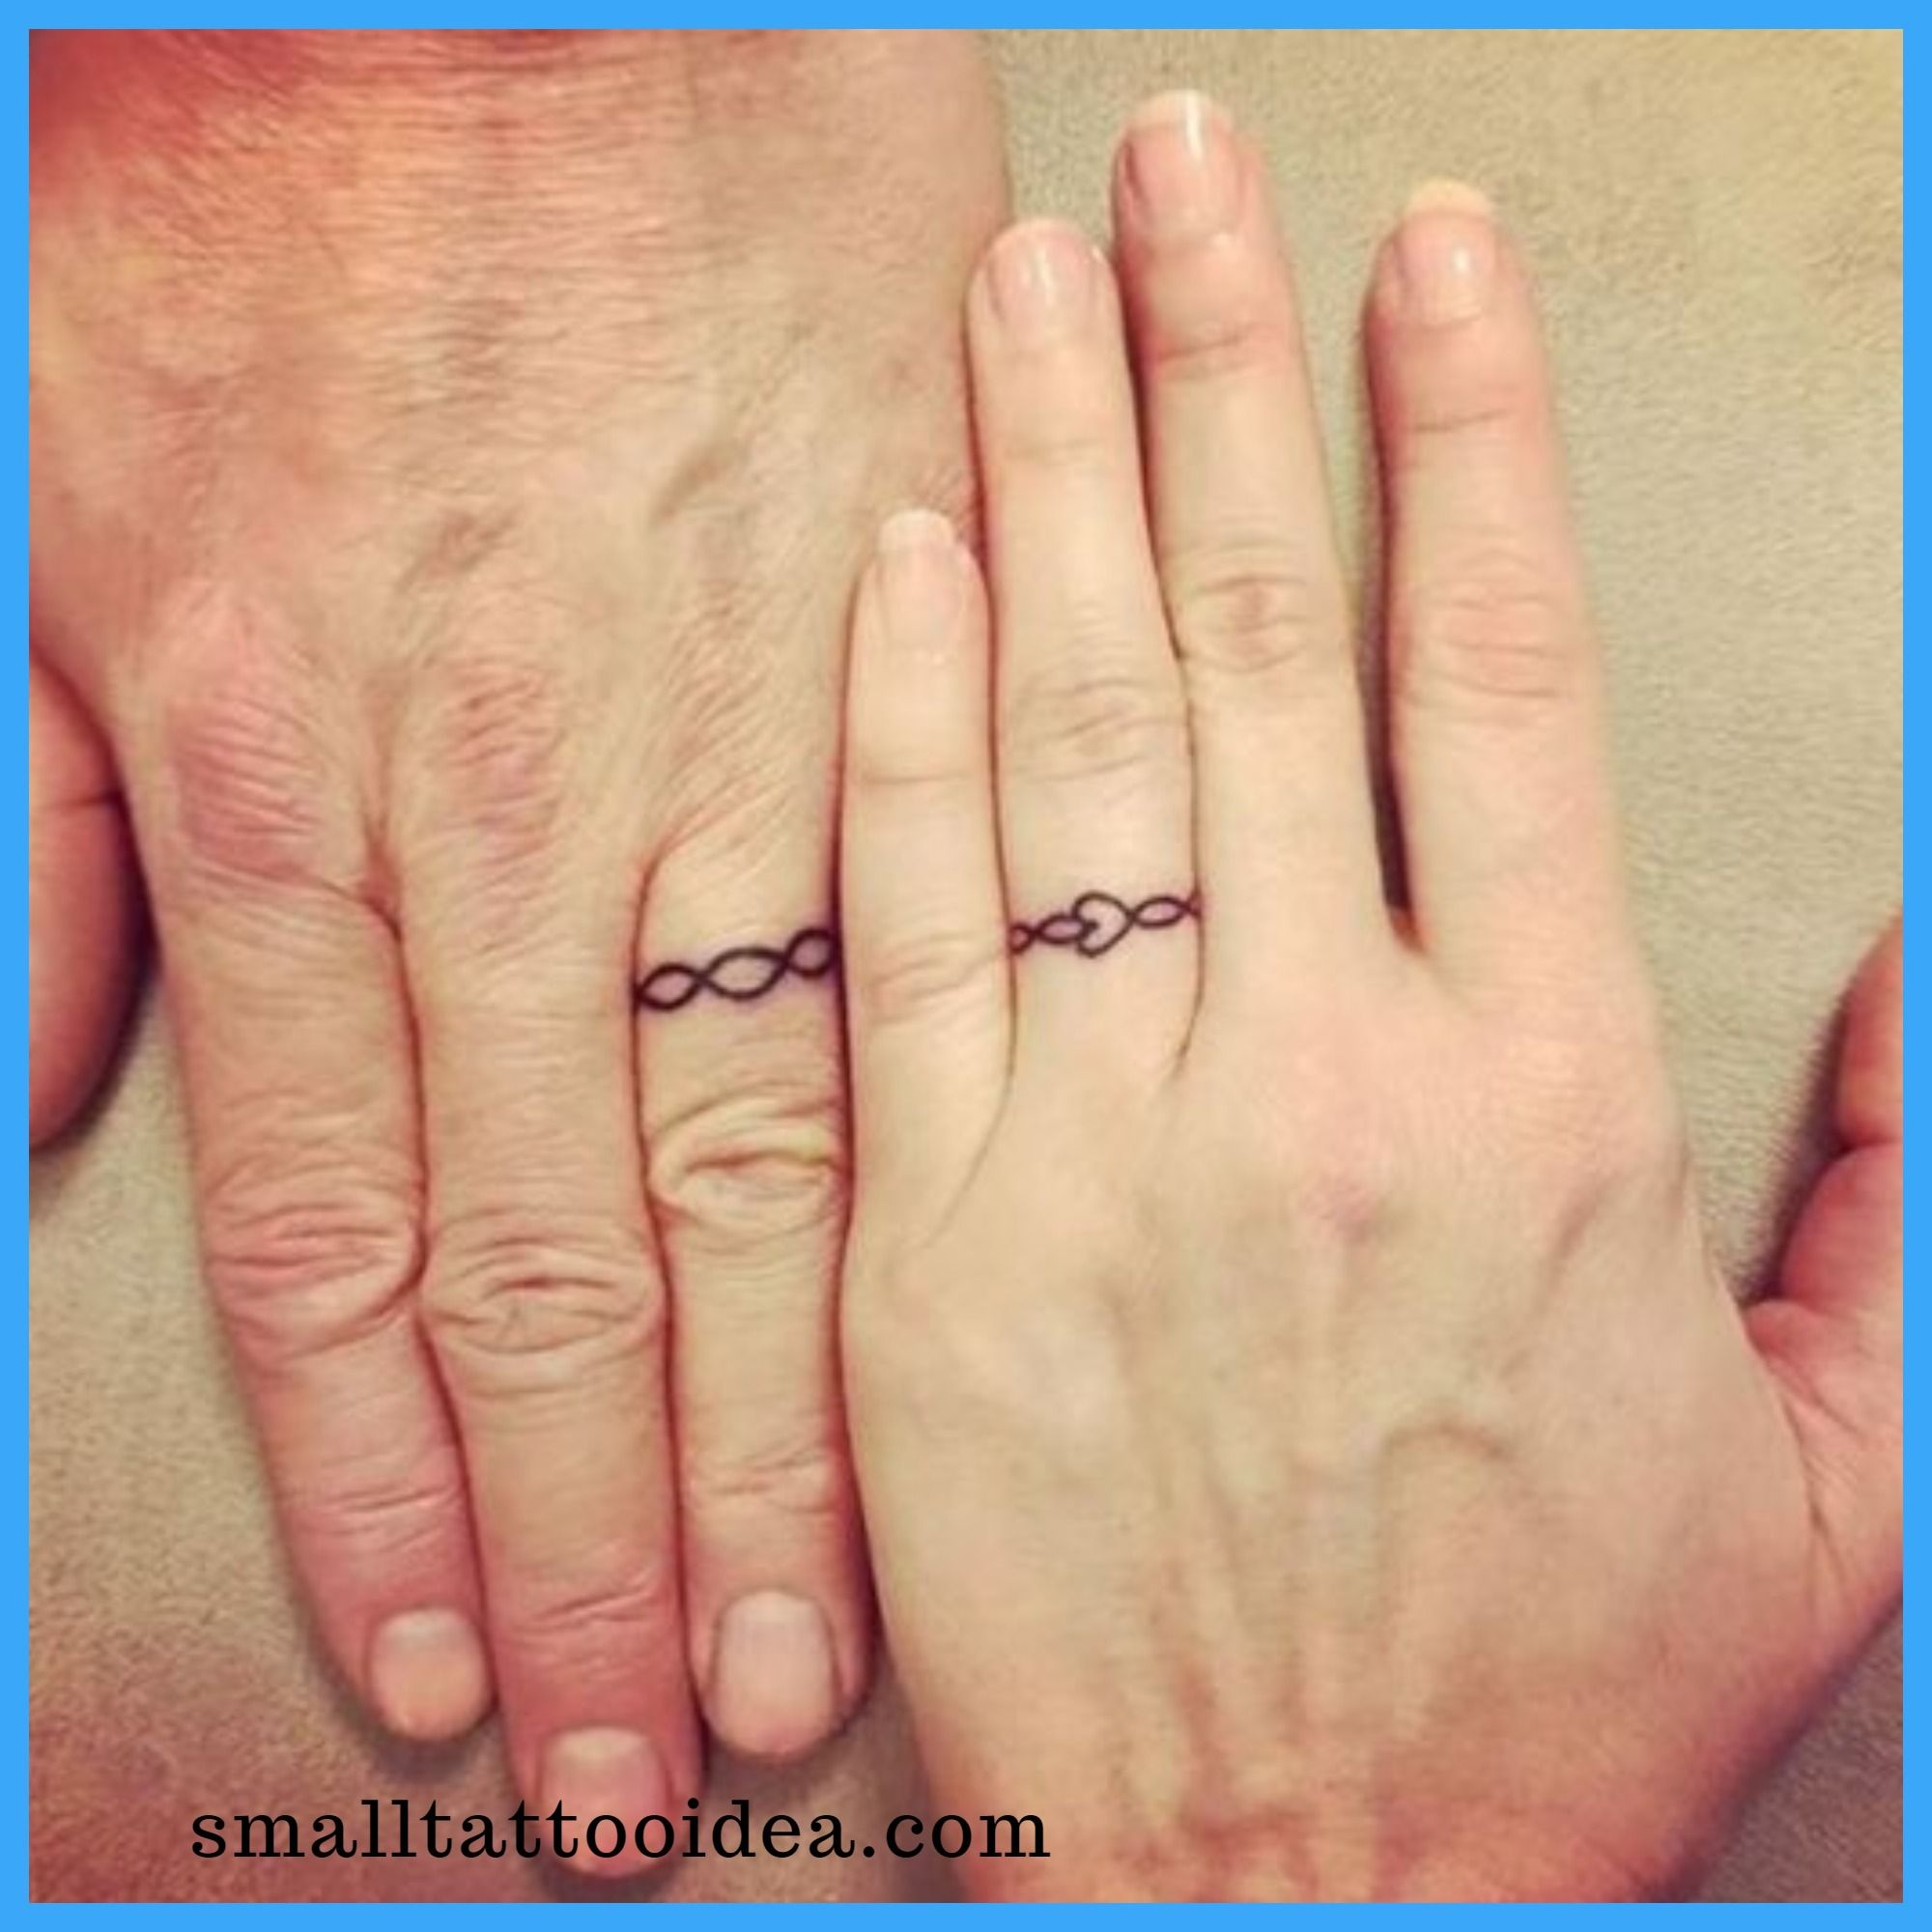 35 Unique Ring Tattoo Ideas Wedding Ring Finger Tattoos Wedding Band Tattoo Tattoo Wedding Rings